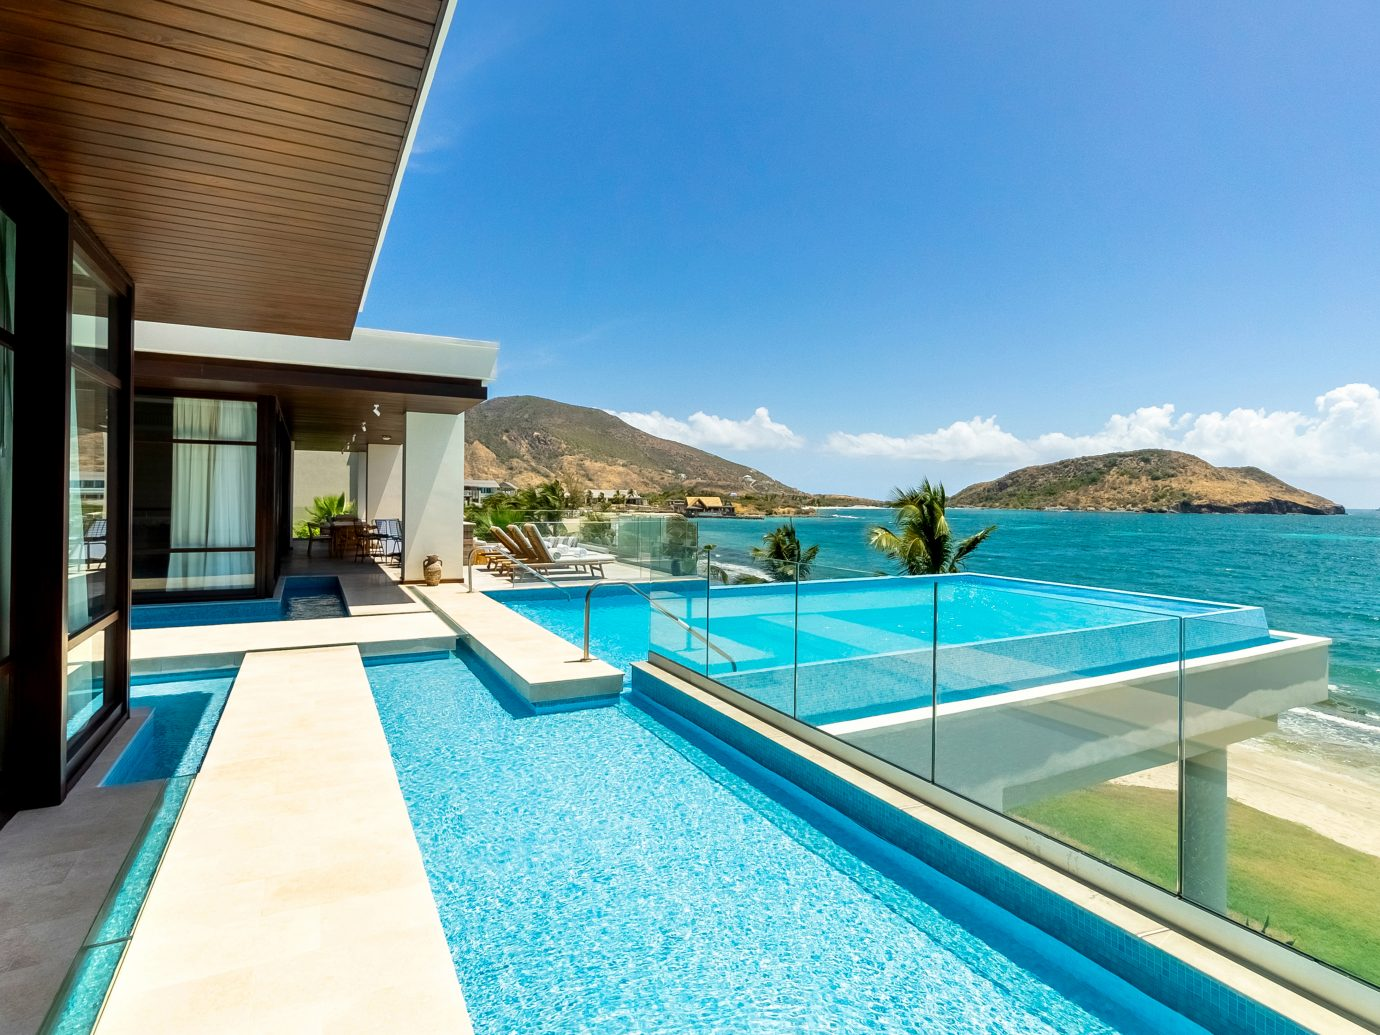 Presidential Villa pool at the Park Hyatt St. Kitts